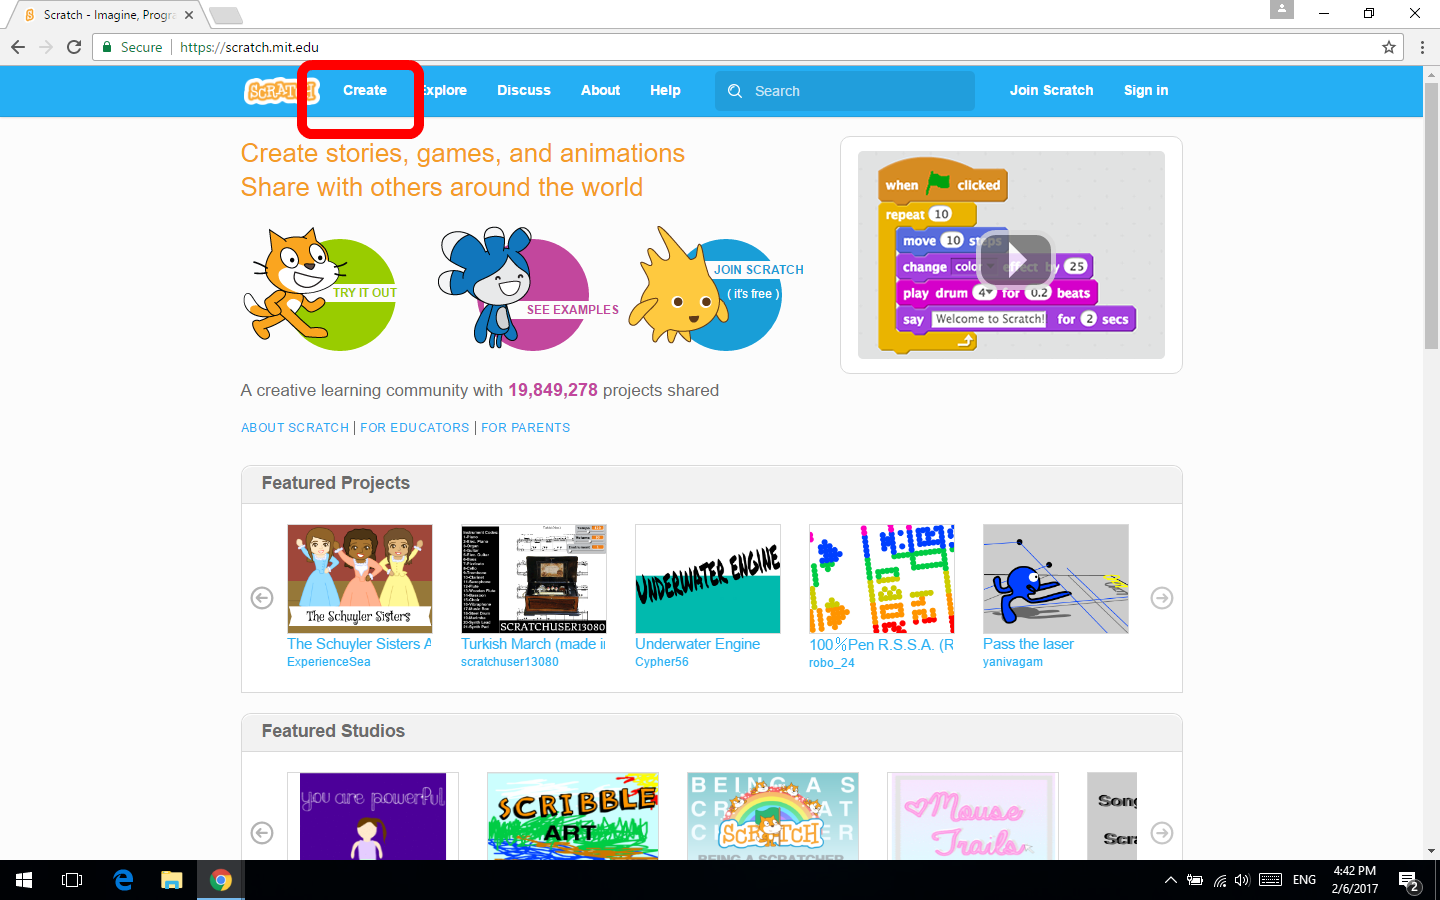 SBrick Scratch Plugin for Windows 10 - Wikis Profile - SBrick Community